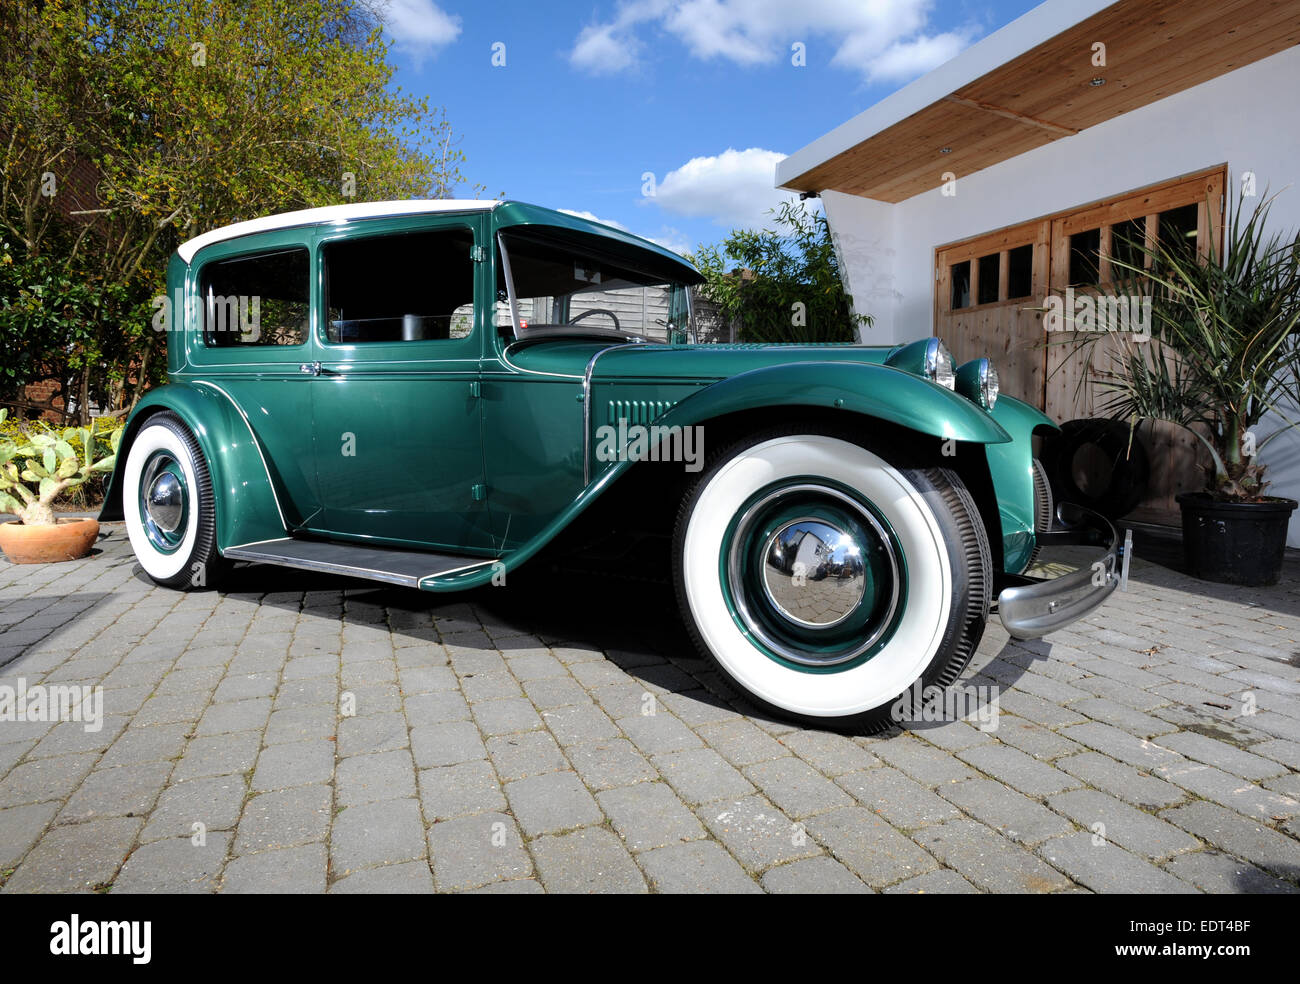 1930s ford cars built as hot rods in the 1940s or 50s stock photo